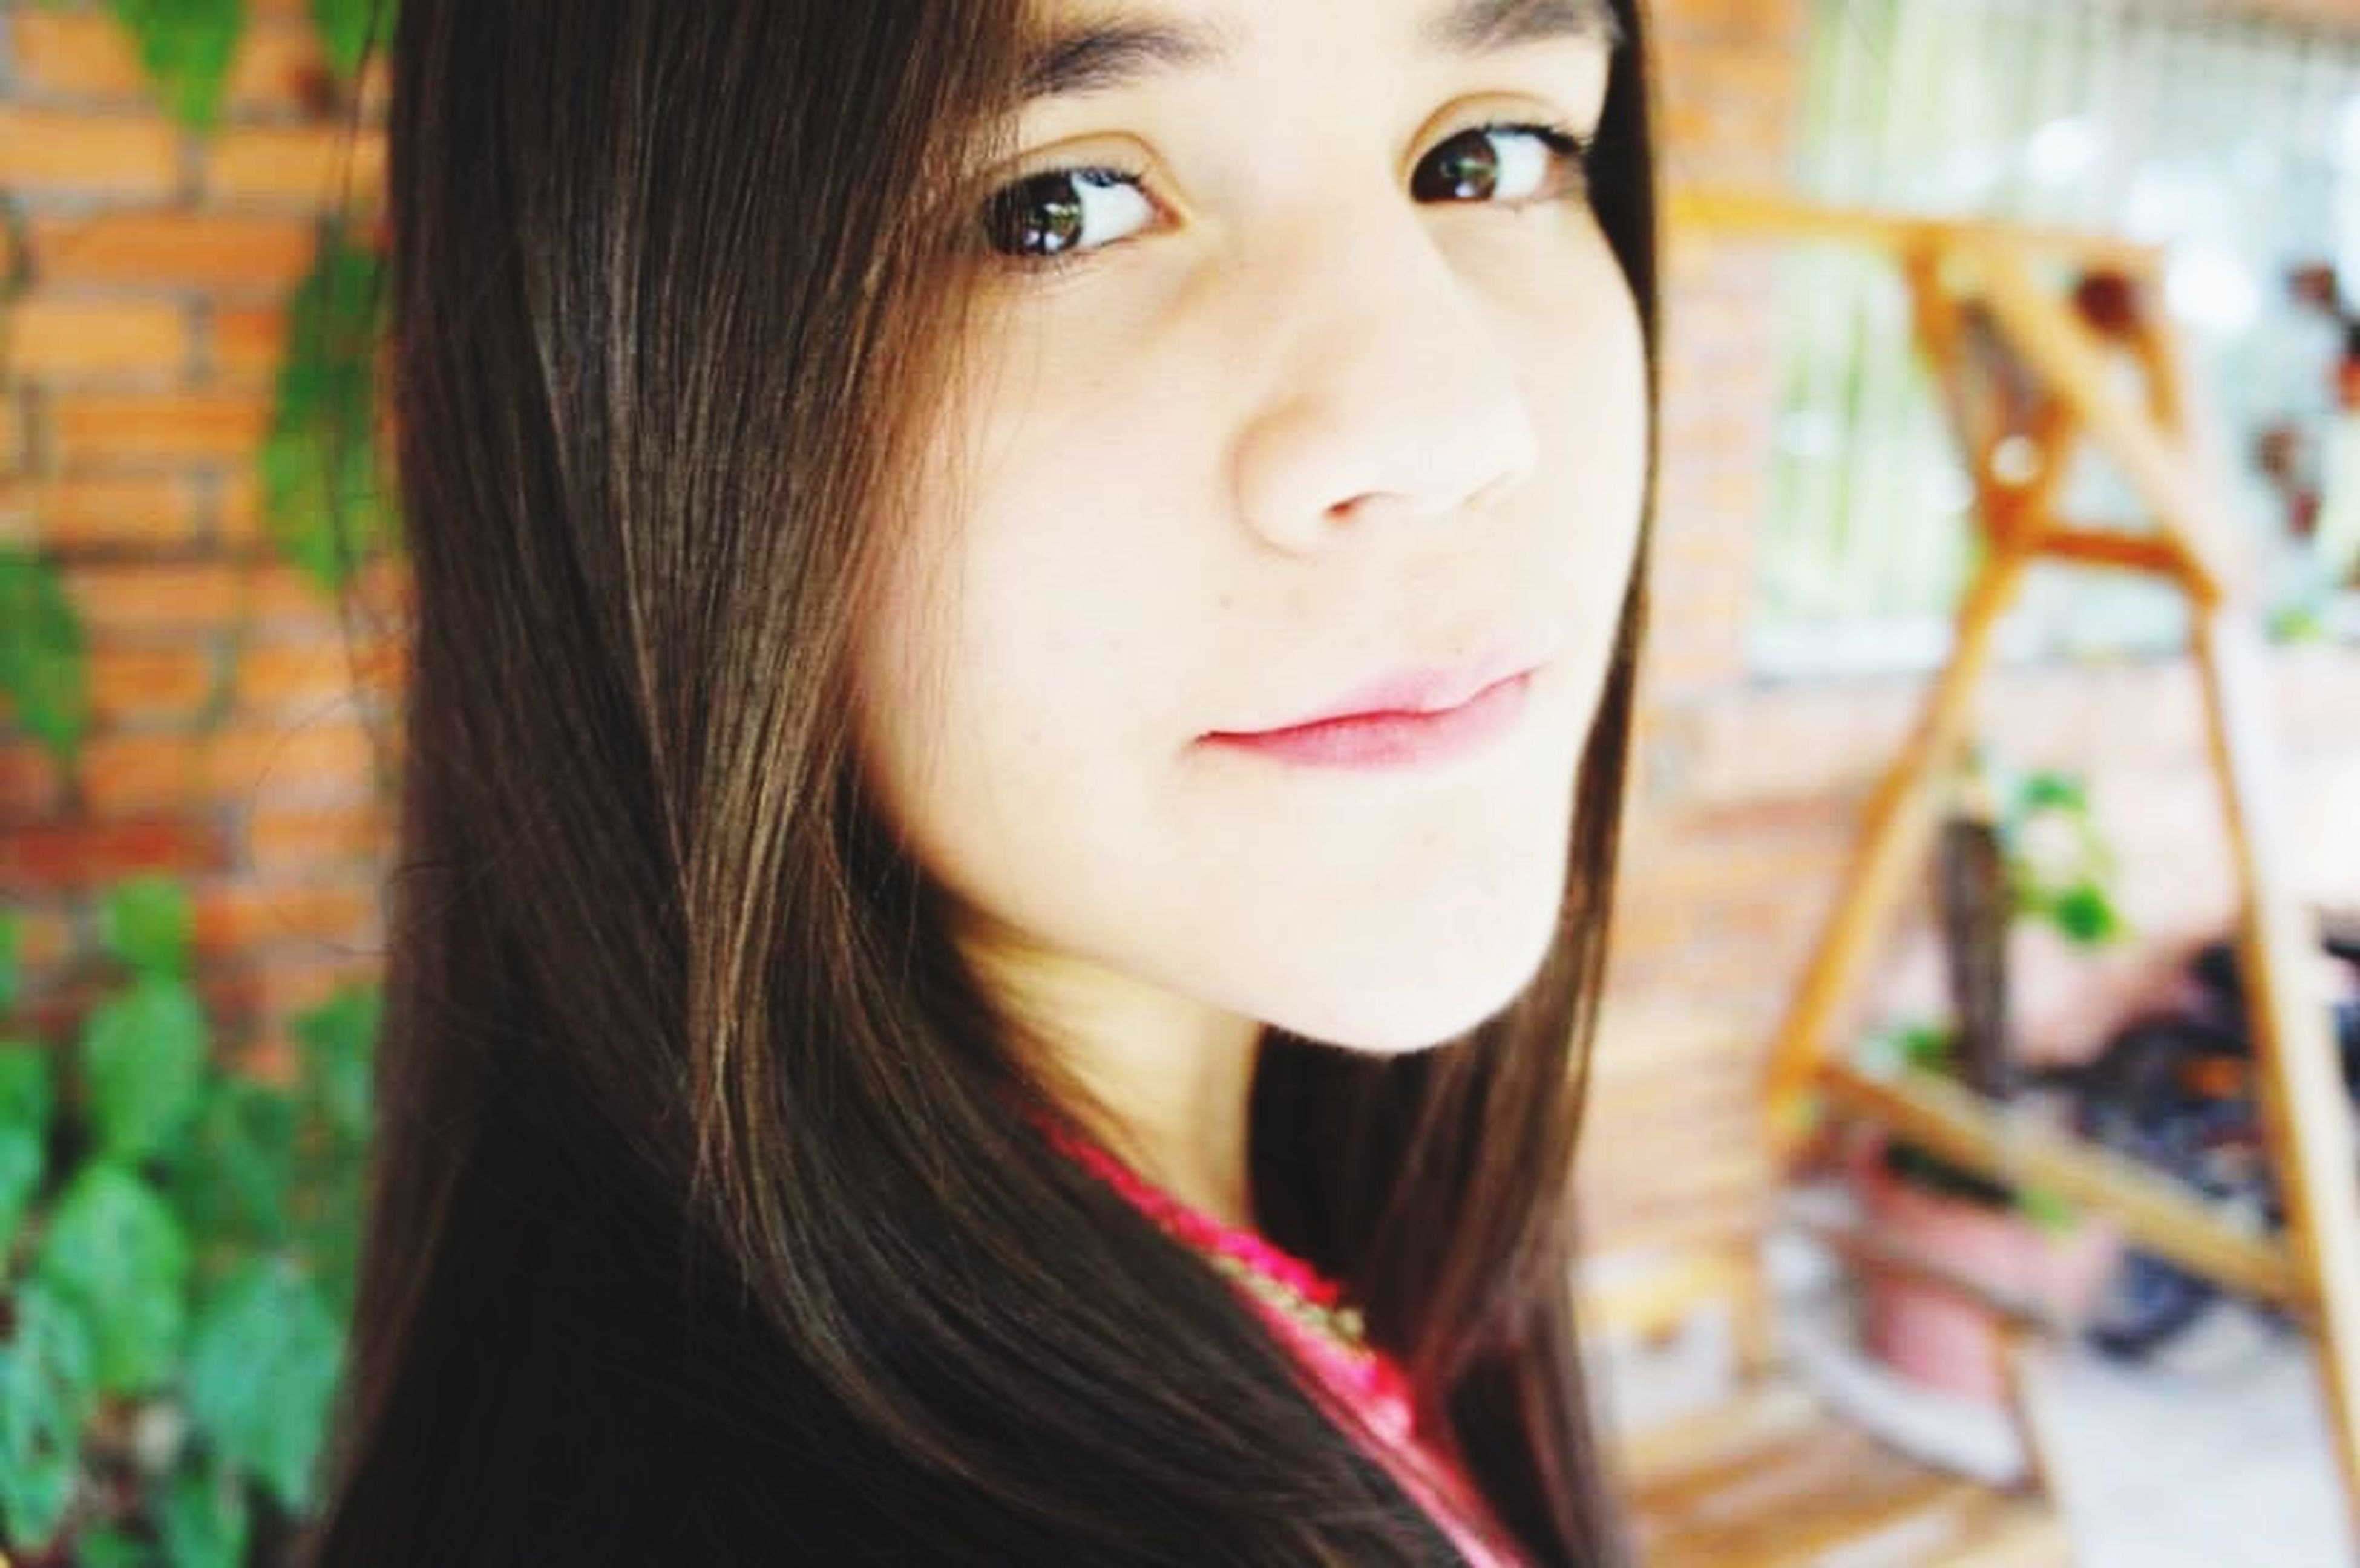 looking at camera, portrait, young adult, headshot, young women, person, close-up, long hair, front view, lifestyles, human face, indoors, focus on foreground, leisure activity, head and shoulders, smiling, beauty